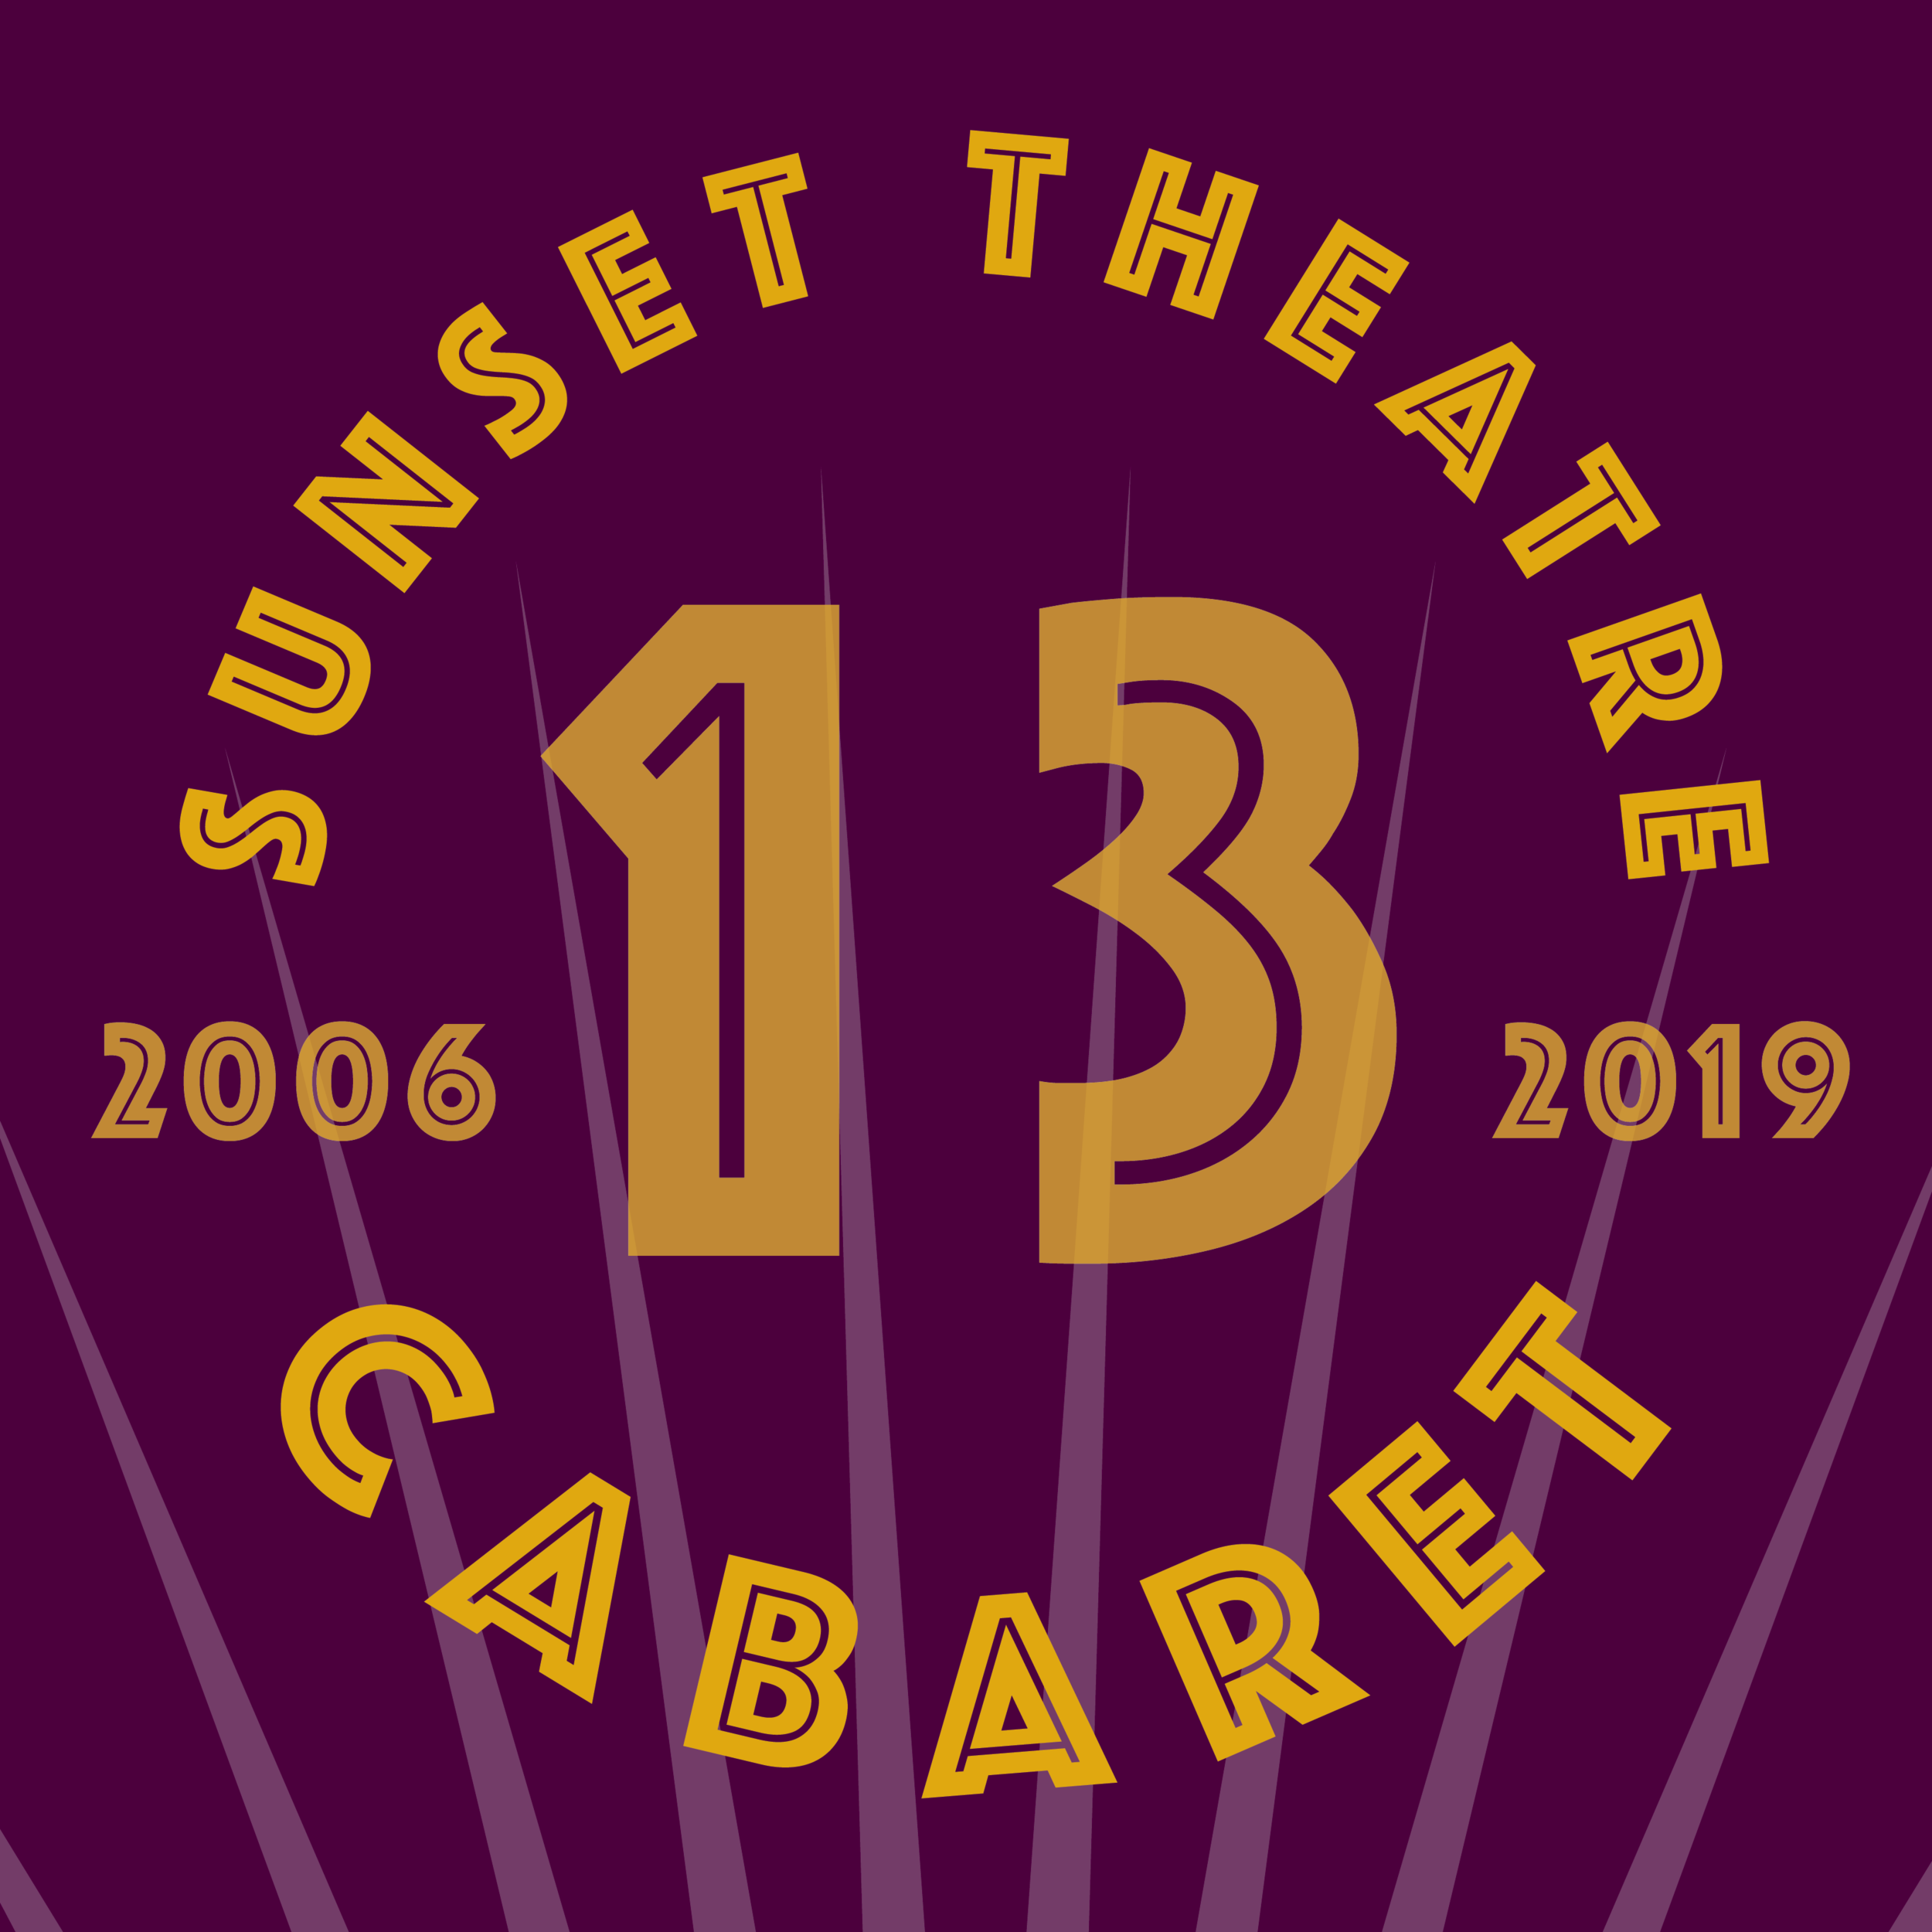 CABARET - A cornucopia of terpsichorean delight.